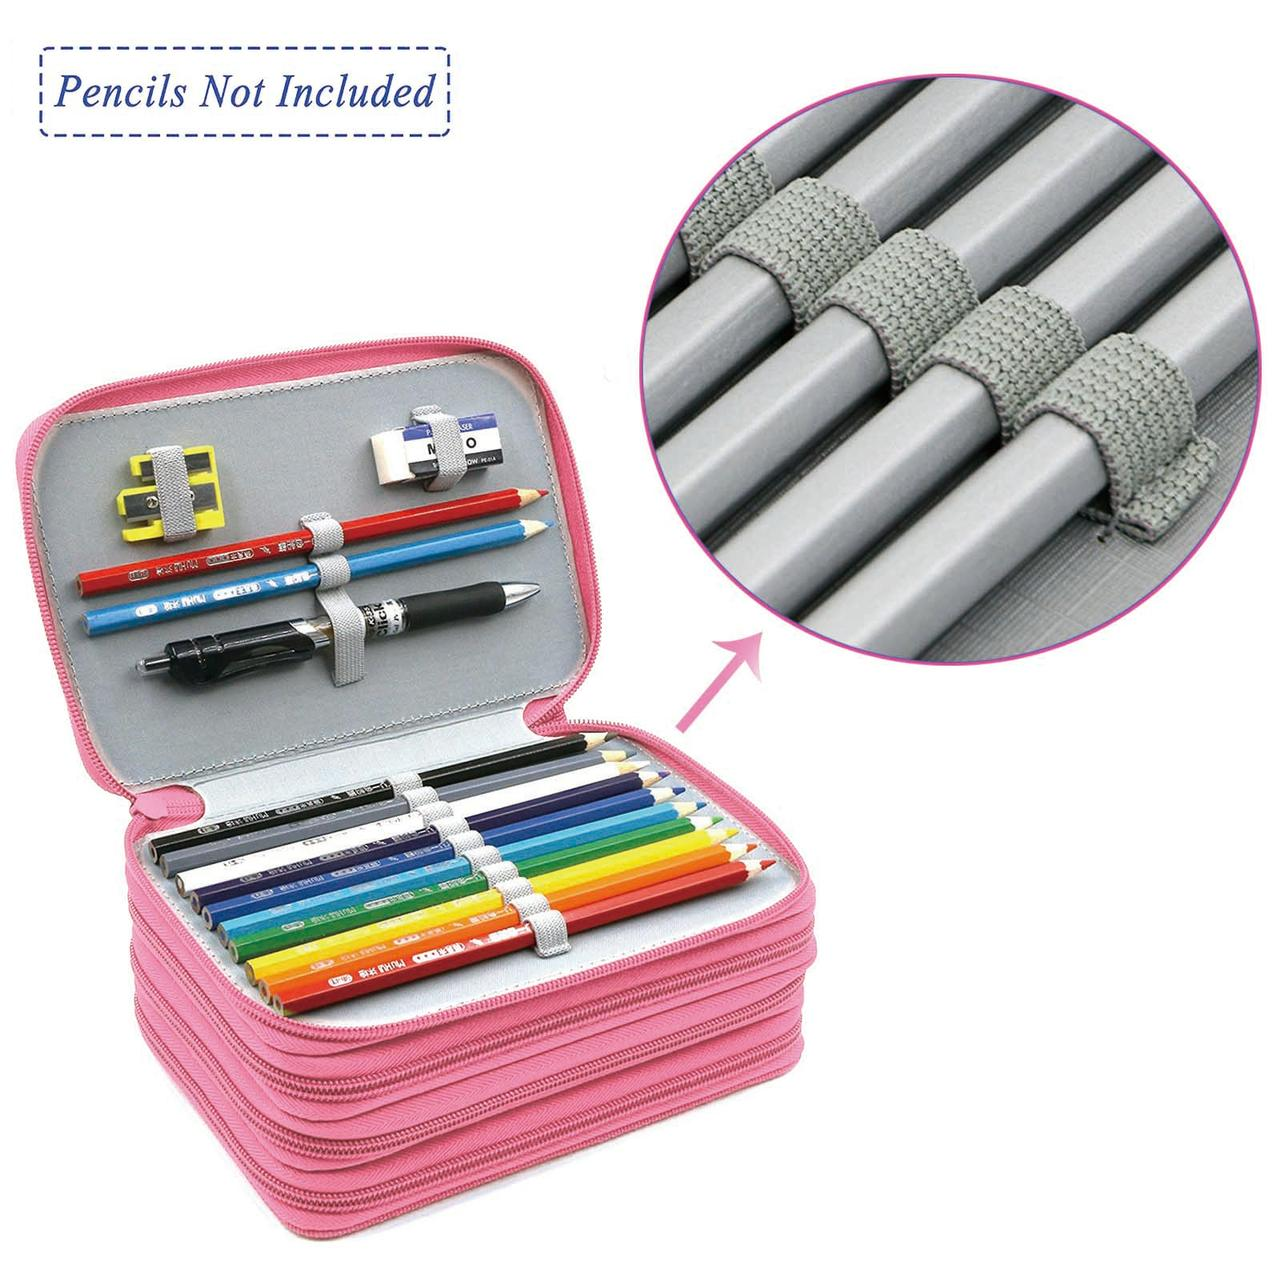 4 Layers 72 Slots High Capacity Pencil Brush Case Box Pen Pouch Bag Makeup Storage Bag(Pink)